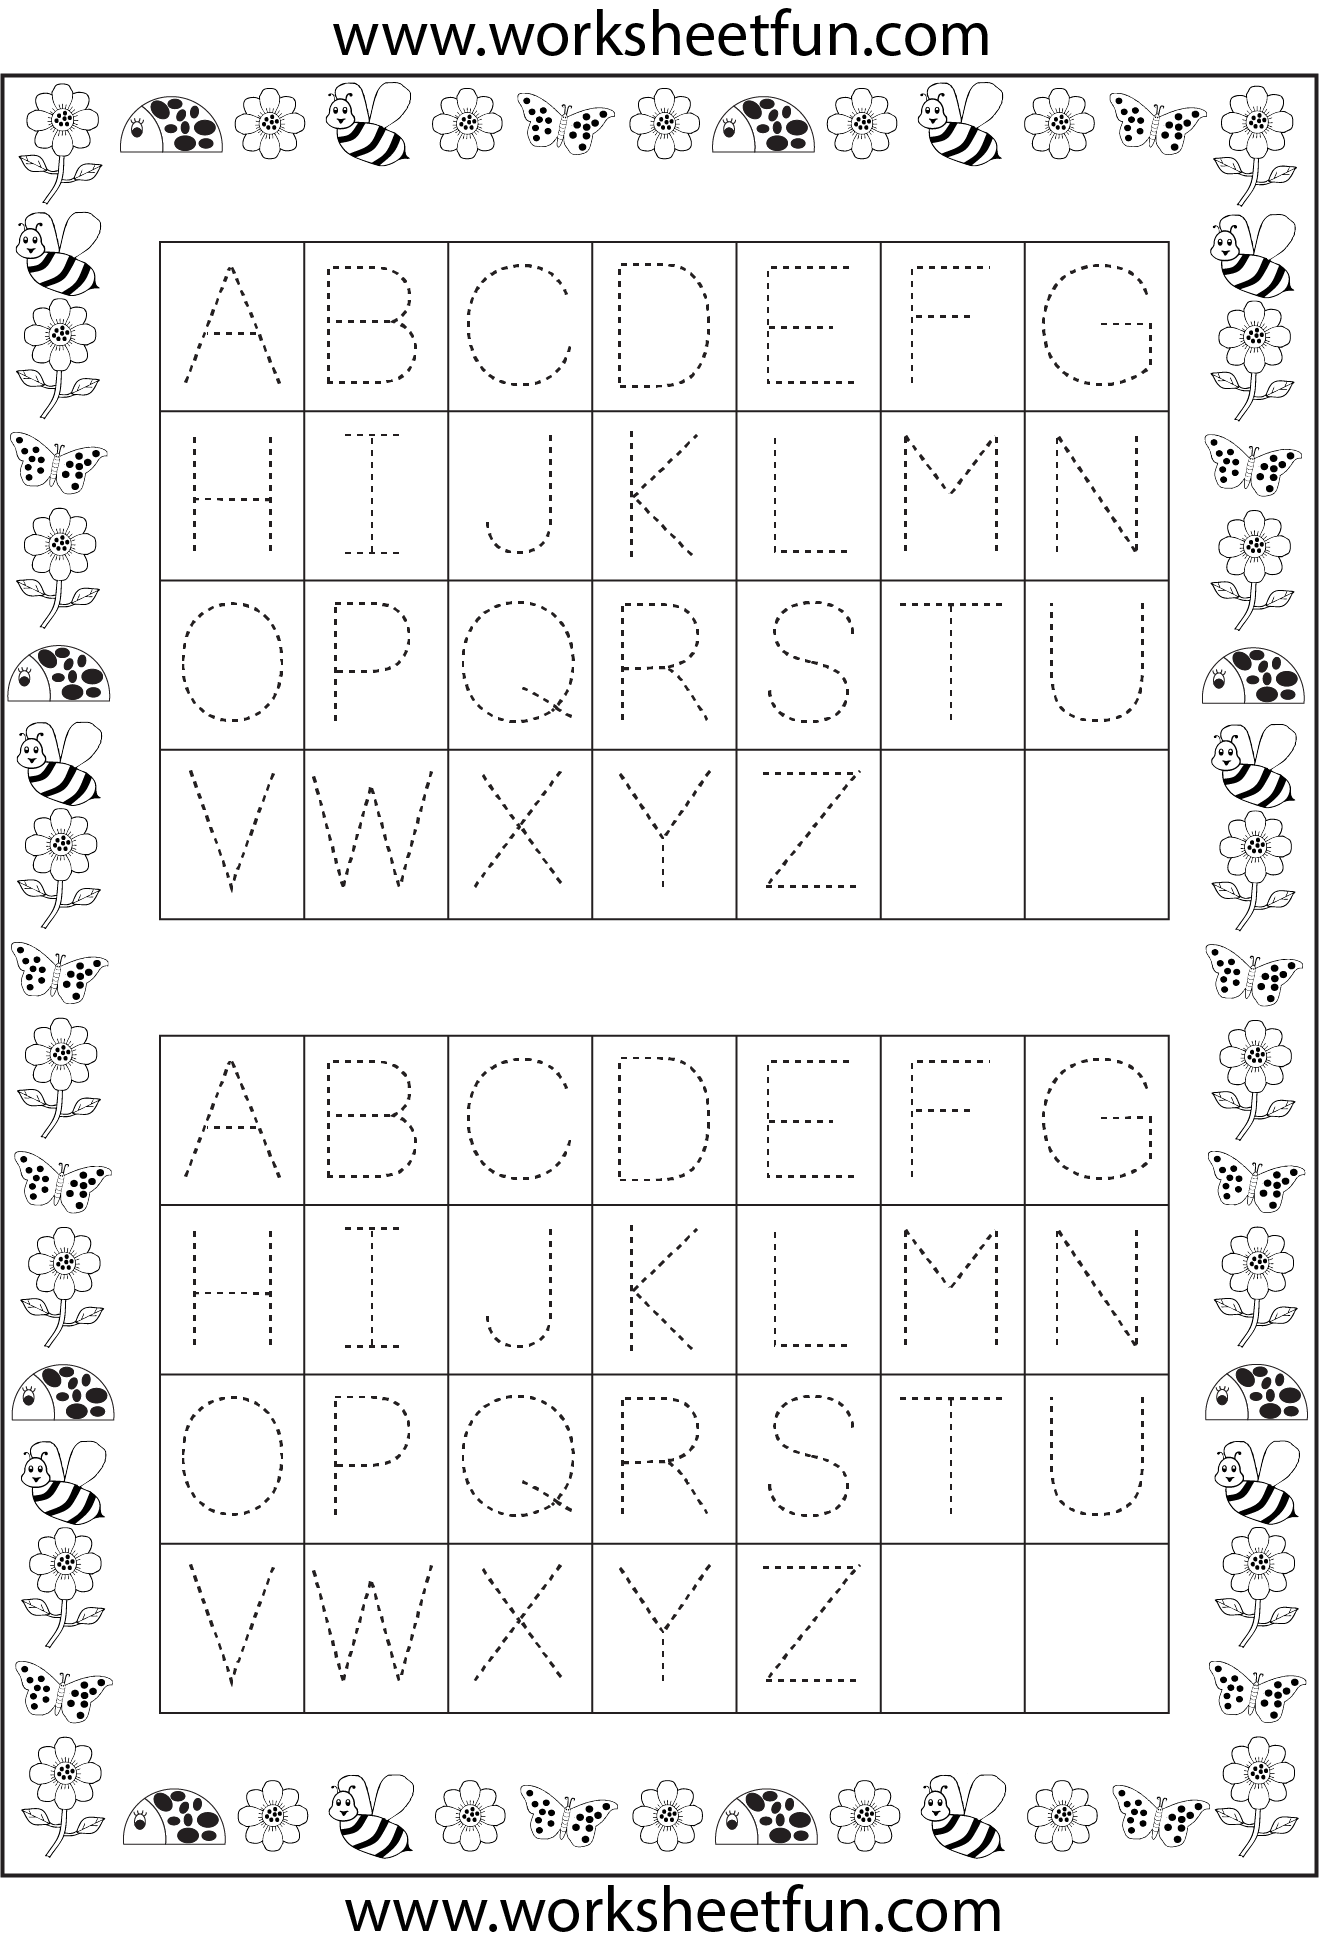 Letter Tracing 1 Worksheet Free Printable Worksheets Worksheetfun